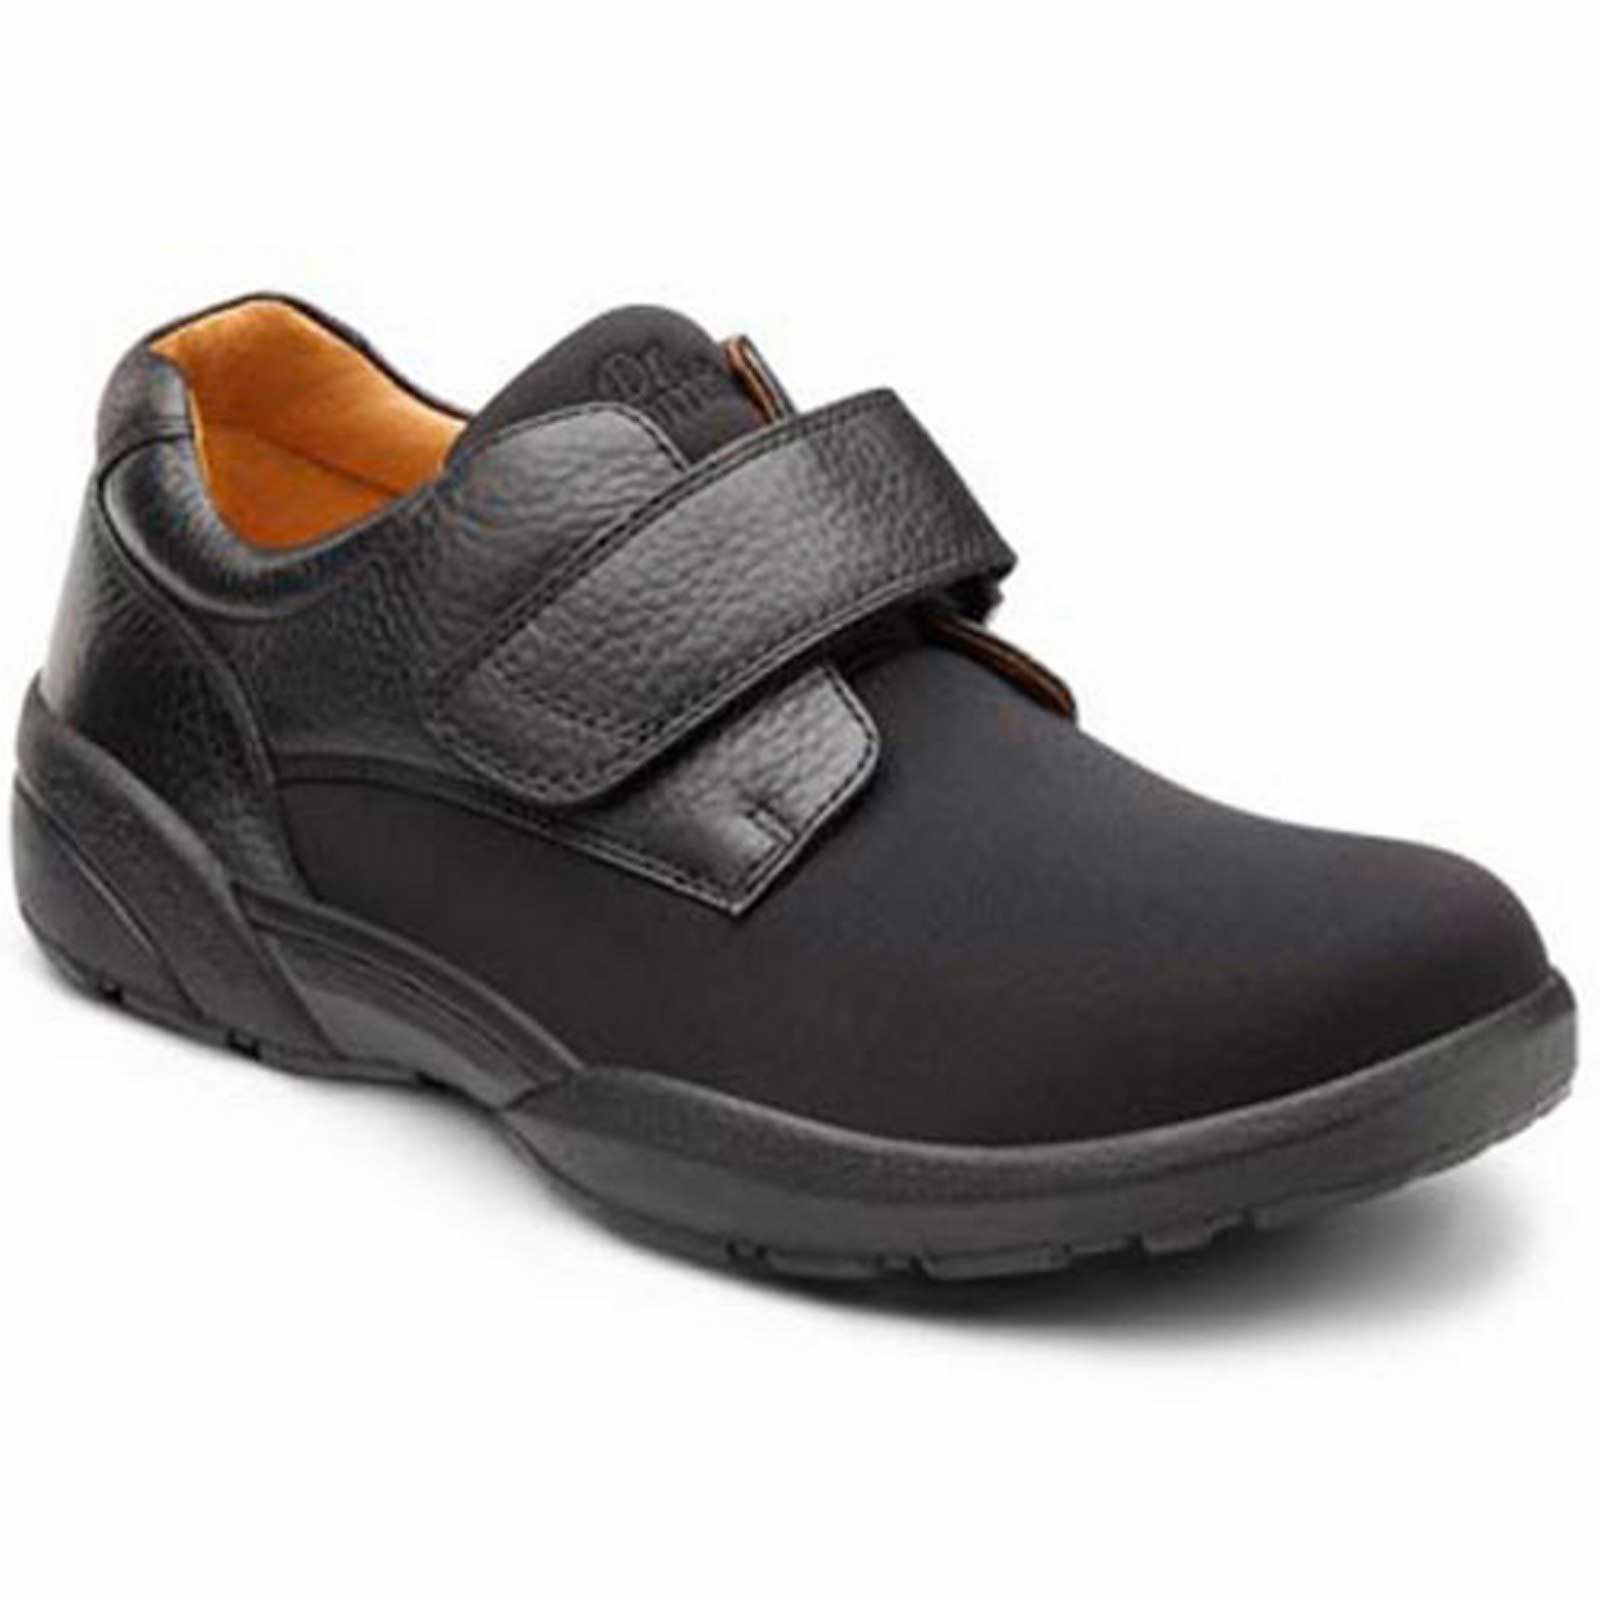 Dr Comfort Shoes Movie Search Engine At Search Com